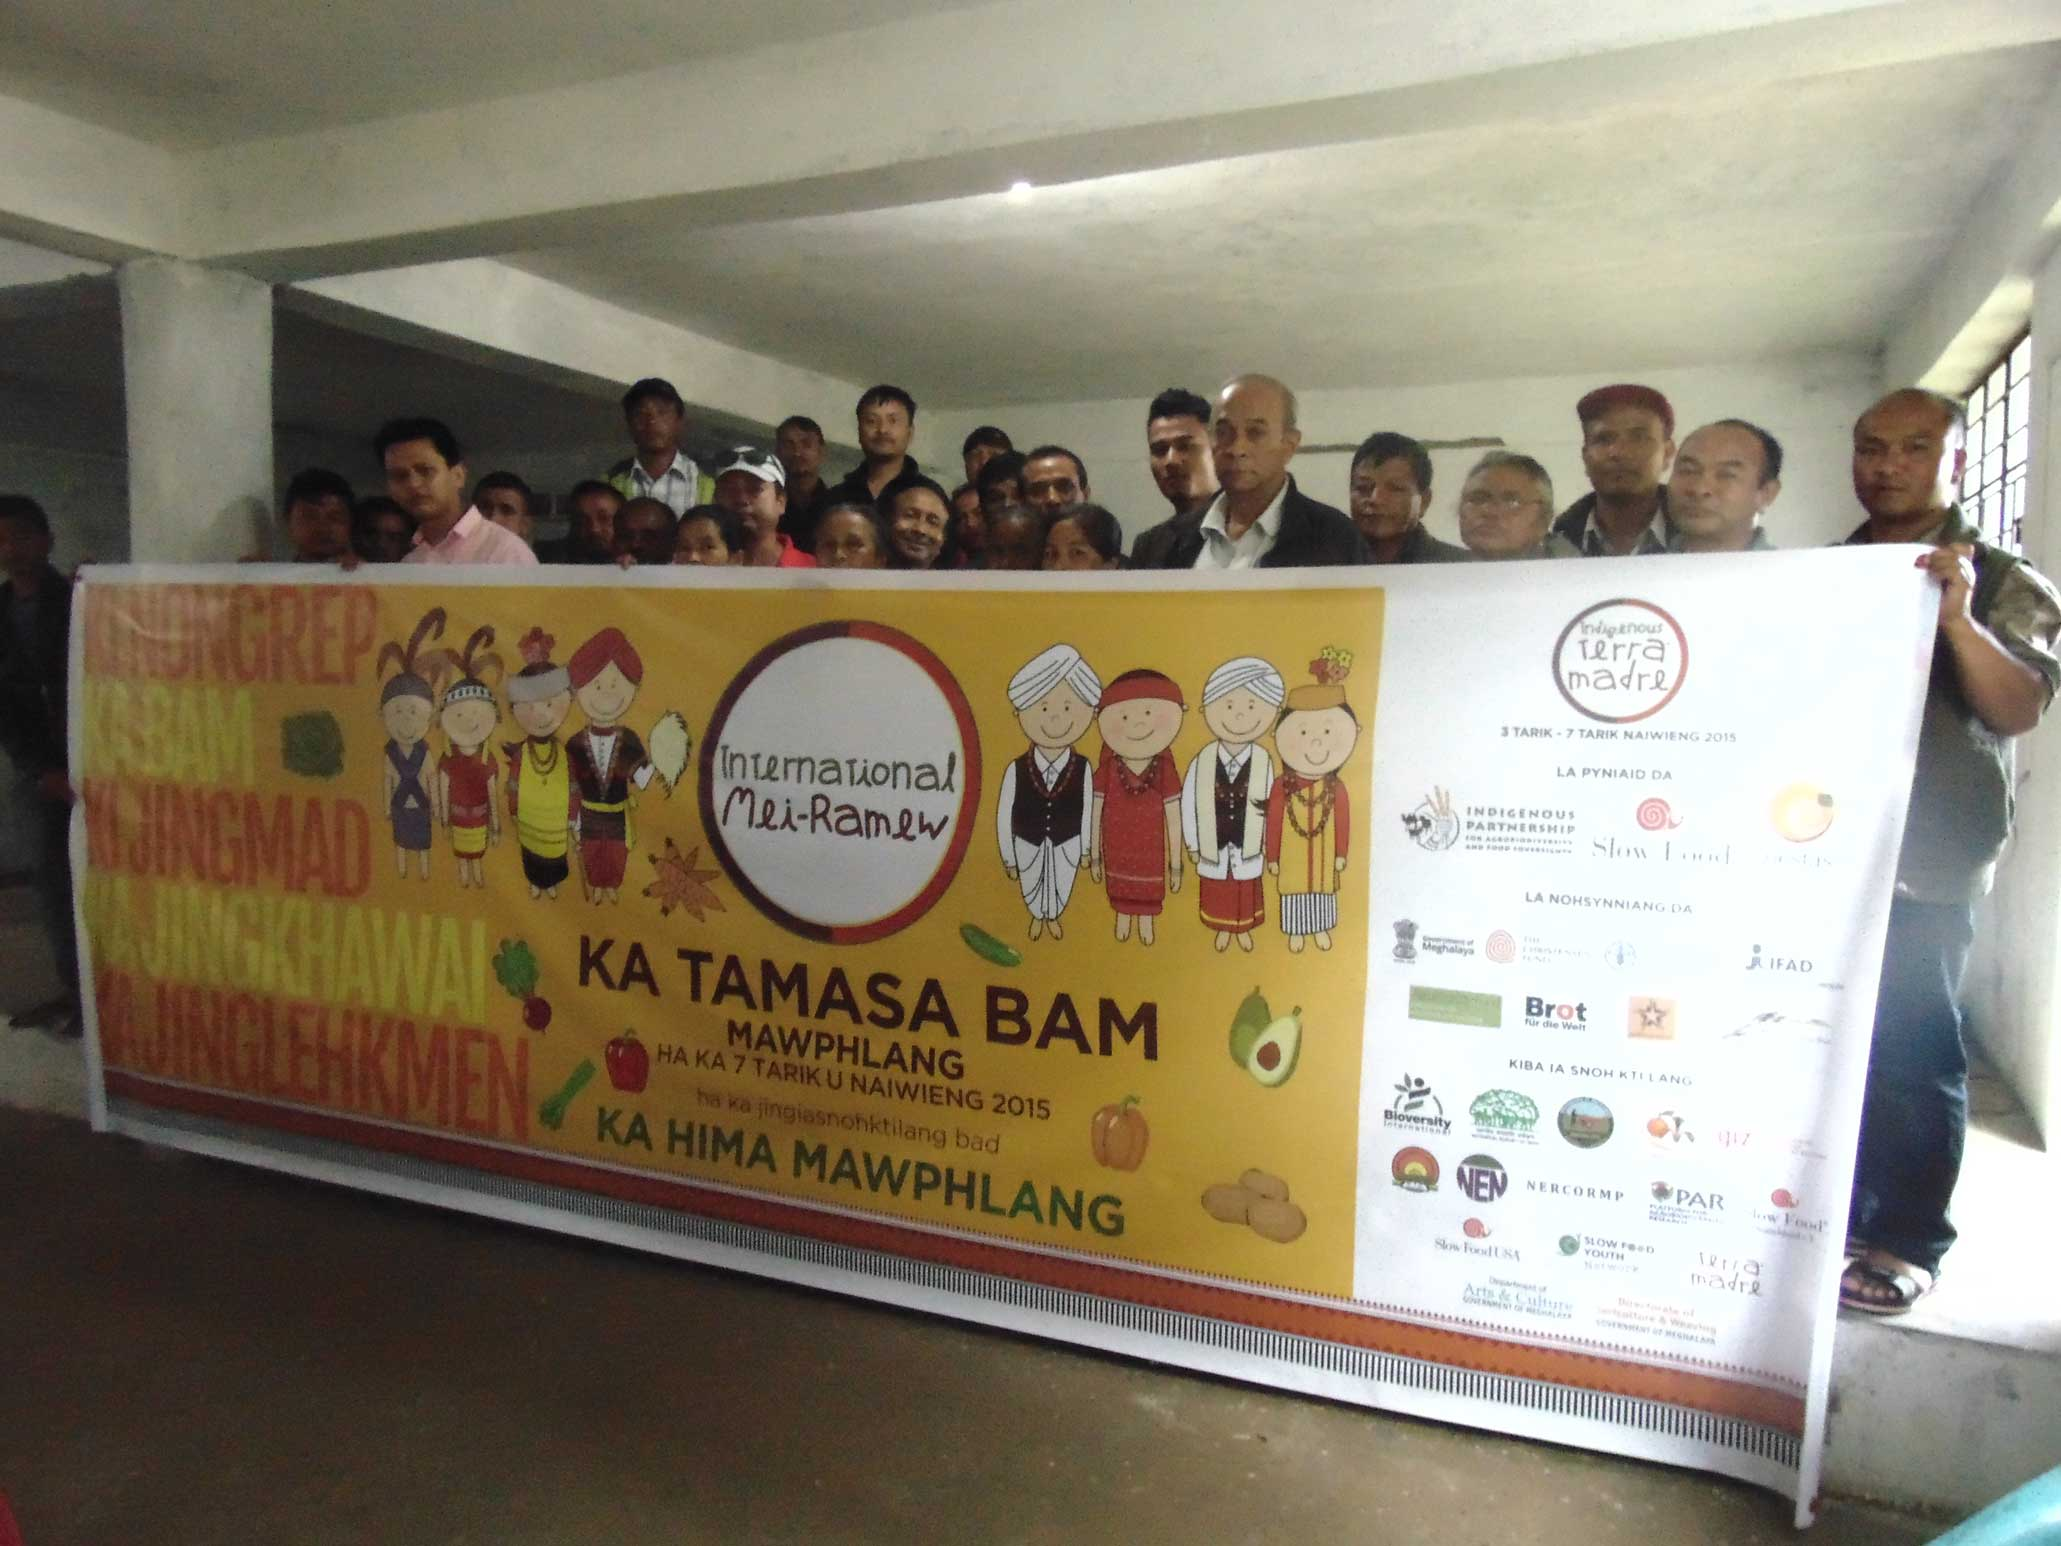 Community presenting the Hima Mawphlang ITM 2015 banner.